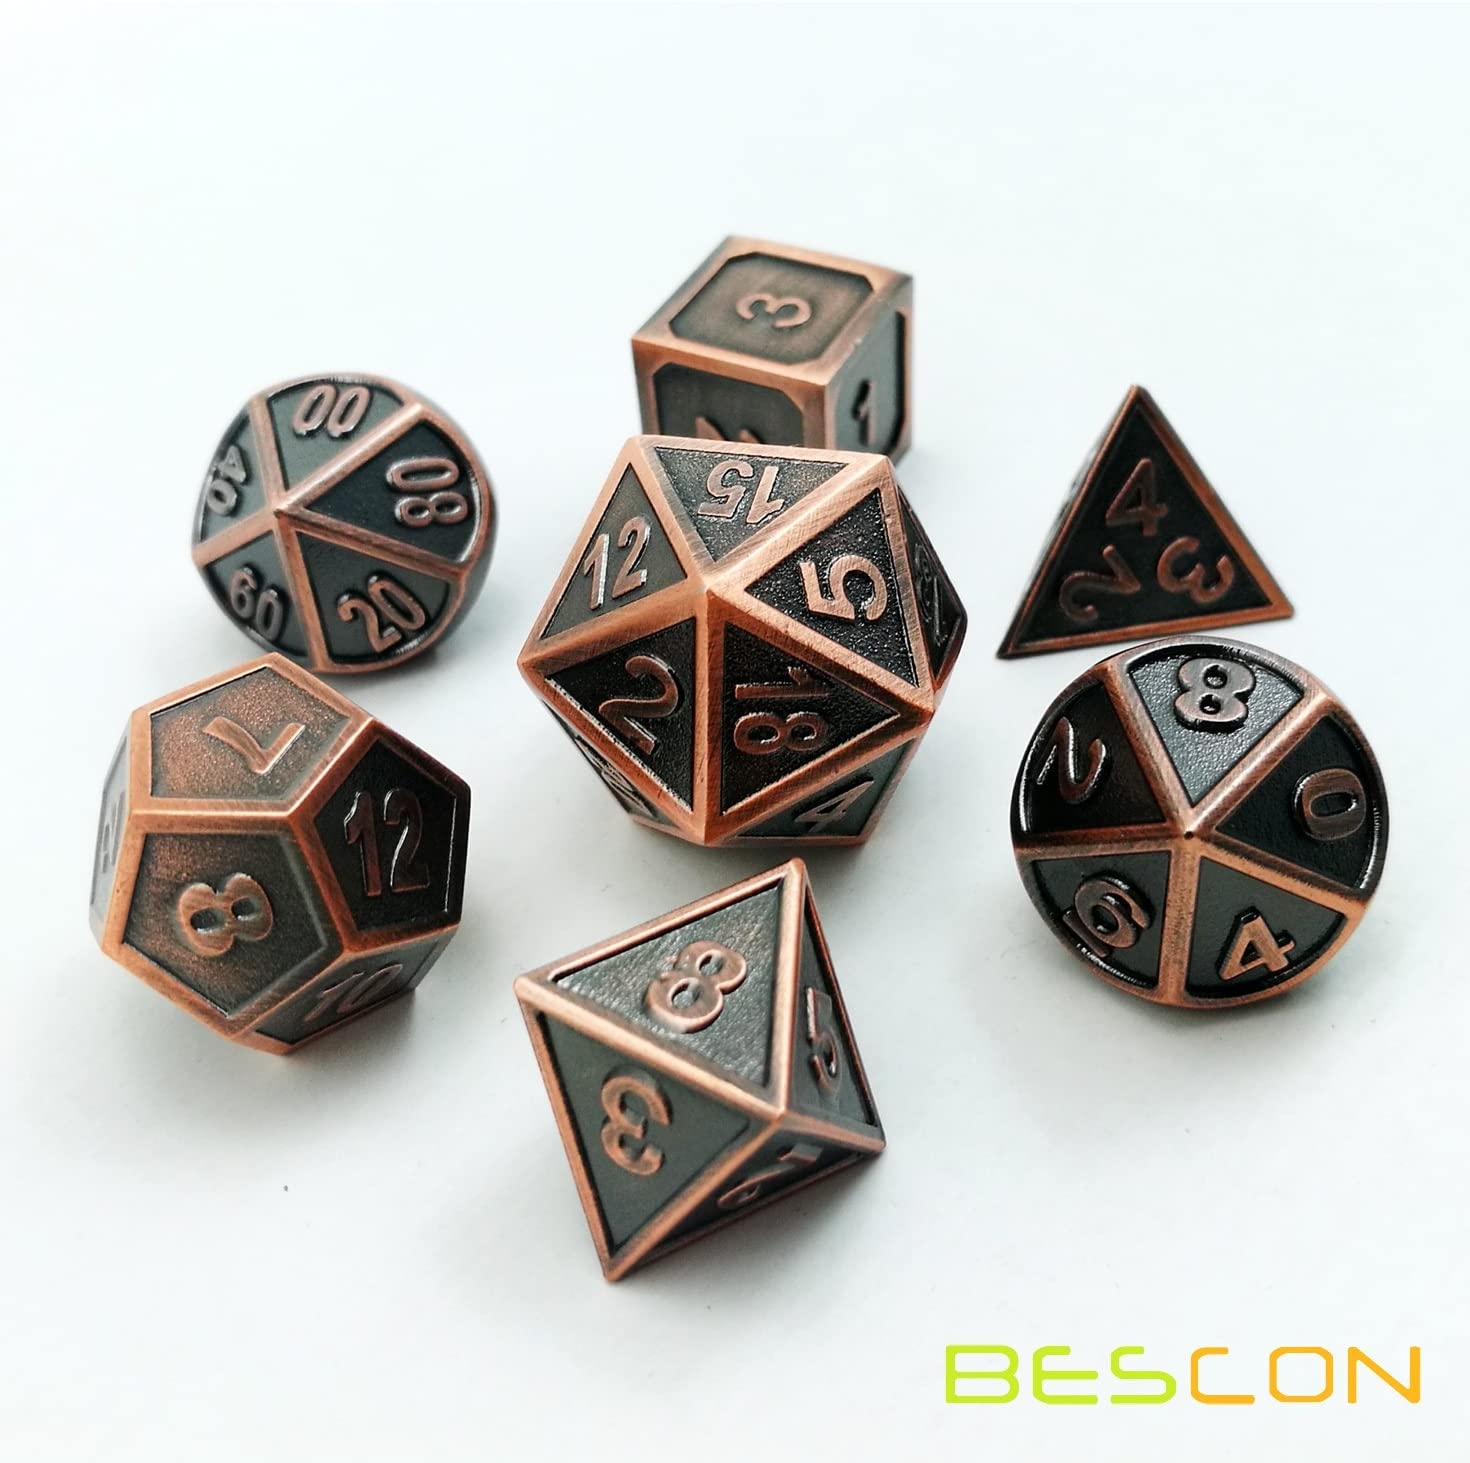 Bescon Copper Solid Metal Polyhedral D&D Dice Set of 7 Copper Metallic RPG Role Playing Game Dice 7pcs Set D4-D20